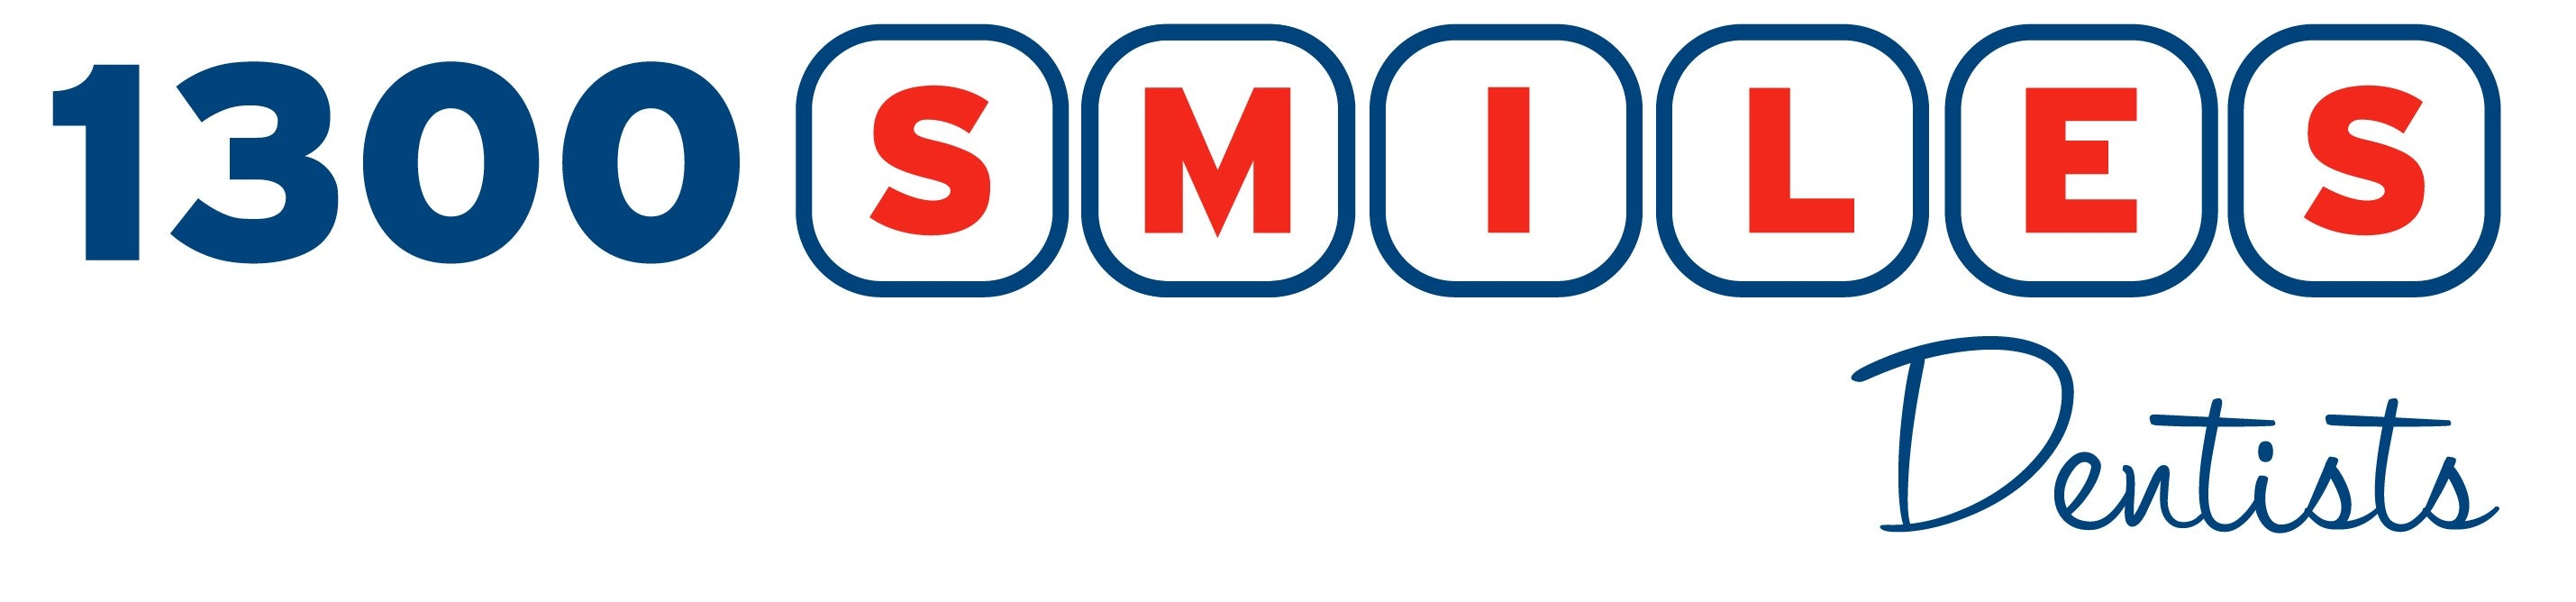 logo for .1300 Smiles - Toowoomba Dentists